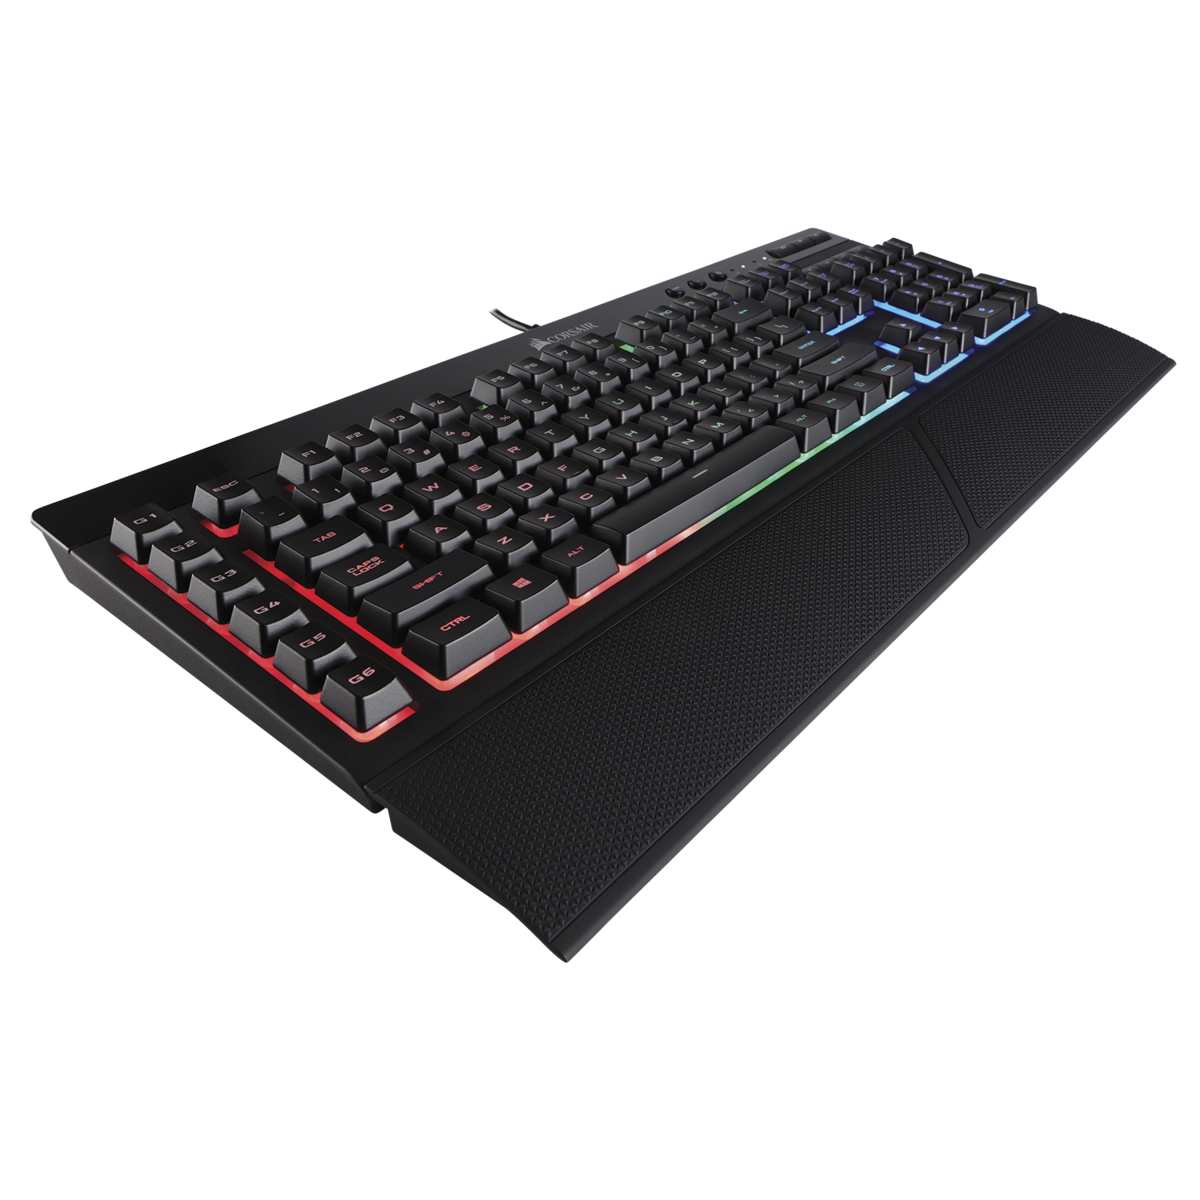 Corsair Gaming K55 RGB Gaming Keyboard